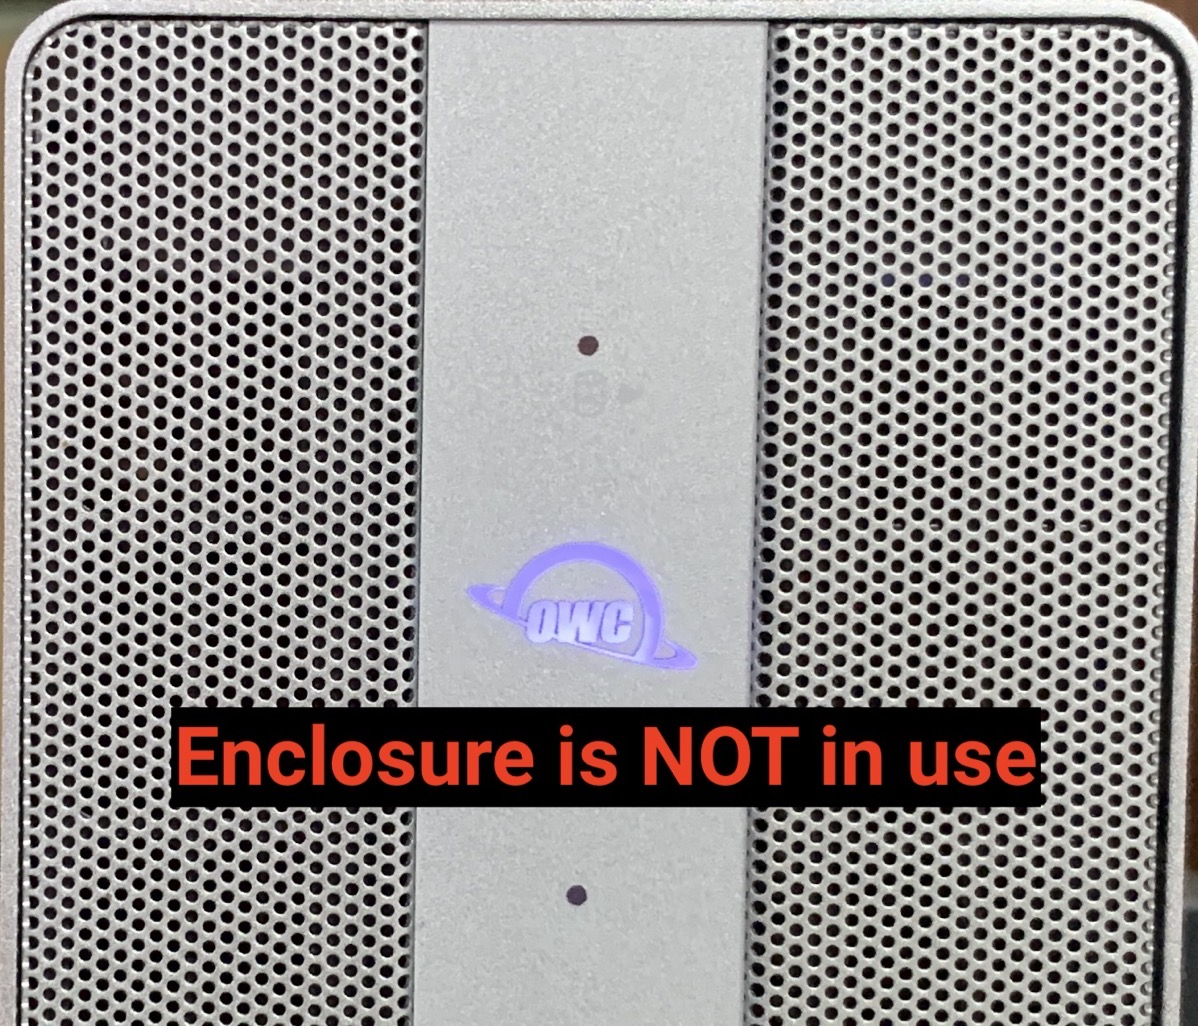 OWC logo in purple Indicating enclosure is NOT in use